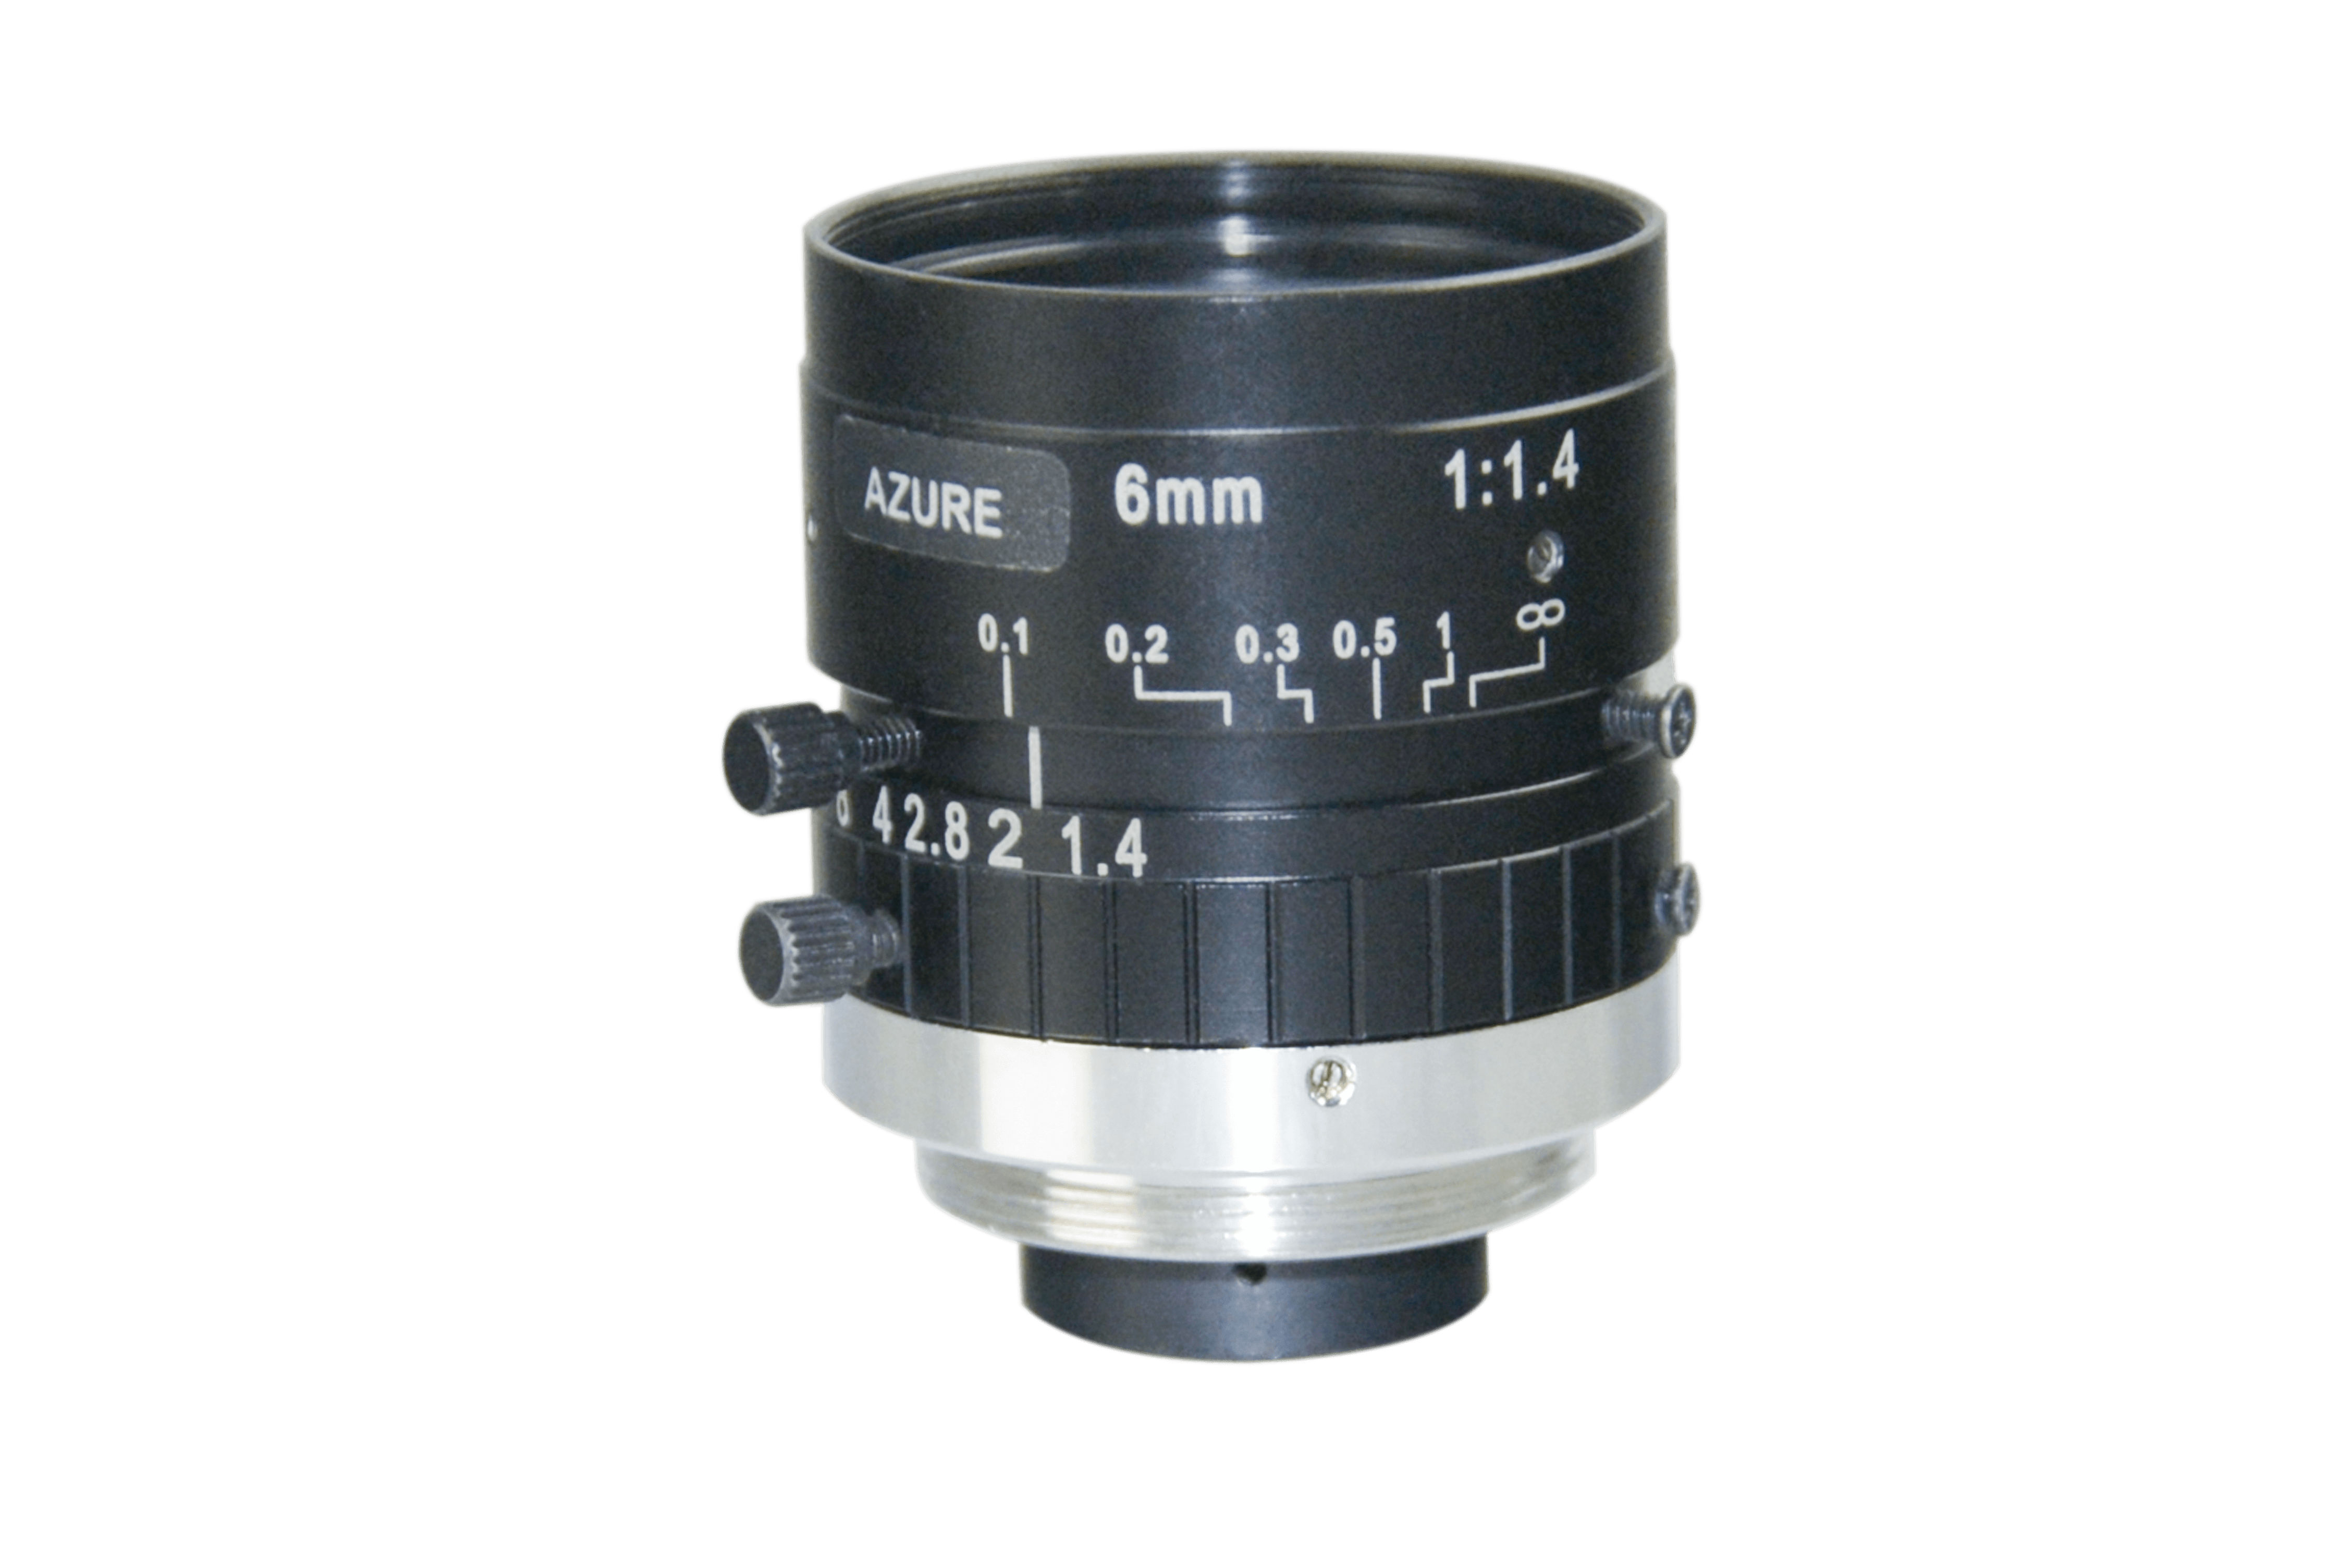 Azure C-Mount 6mm Machine Vision Lens